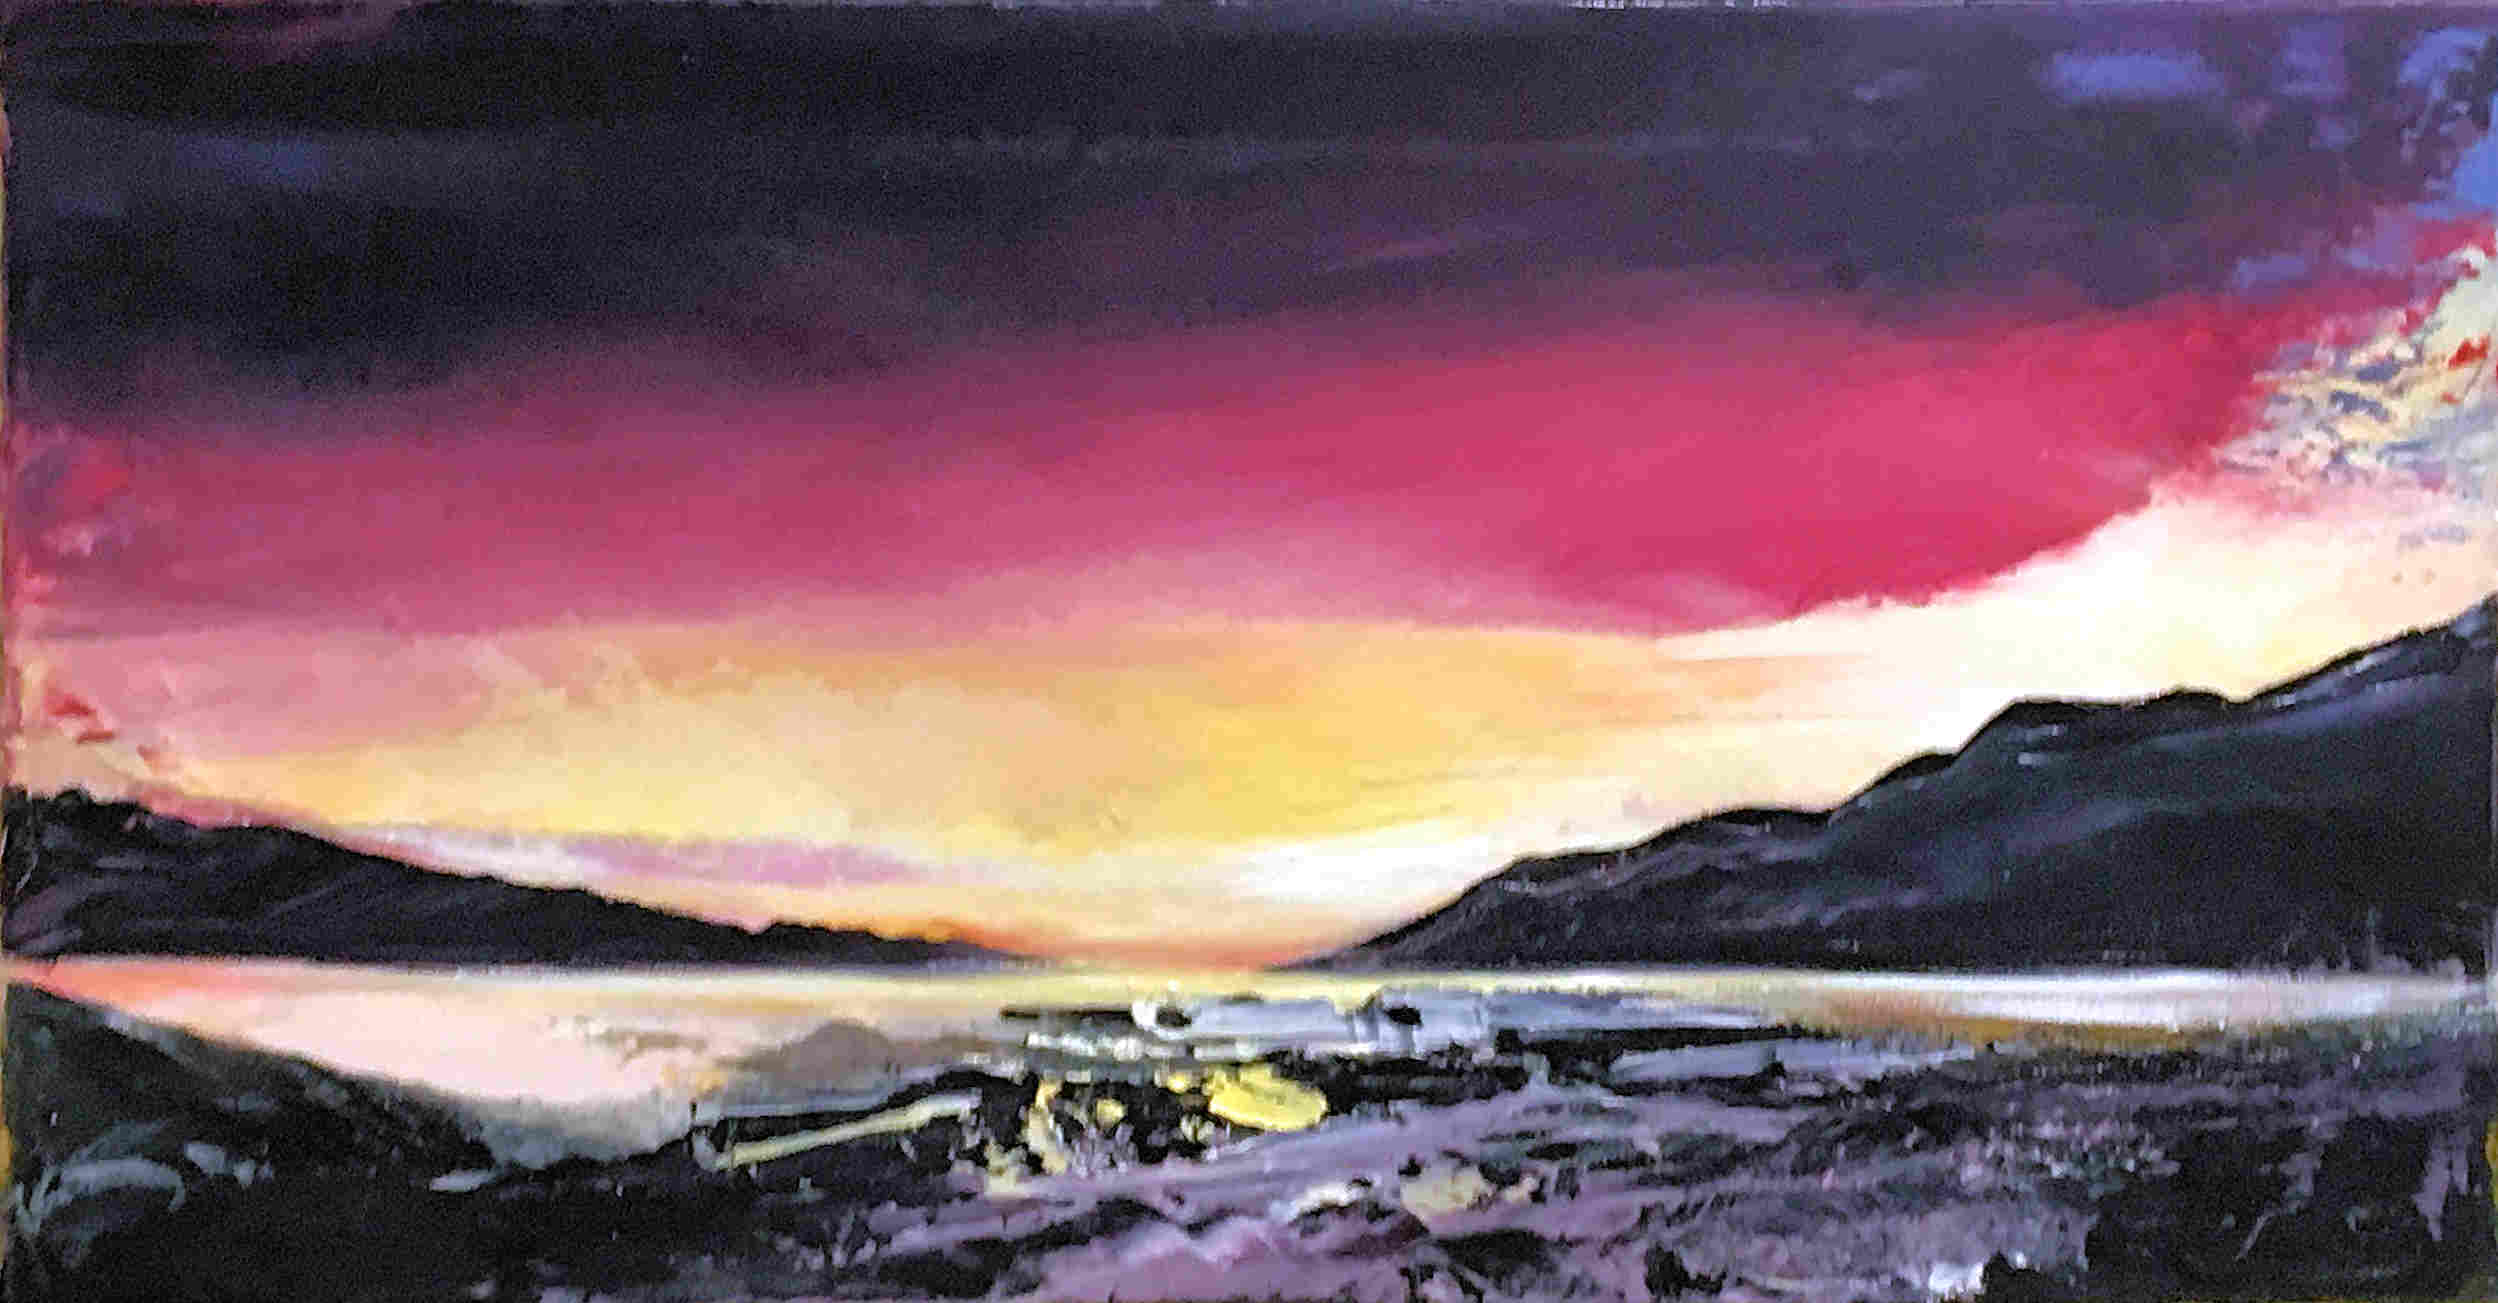 'Plockton to Skye' by artist Shazia Mahmood